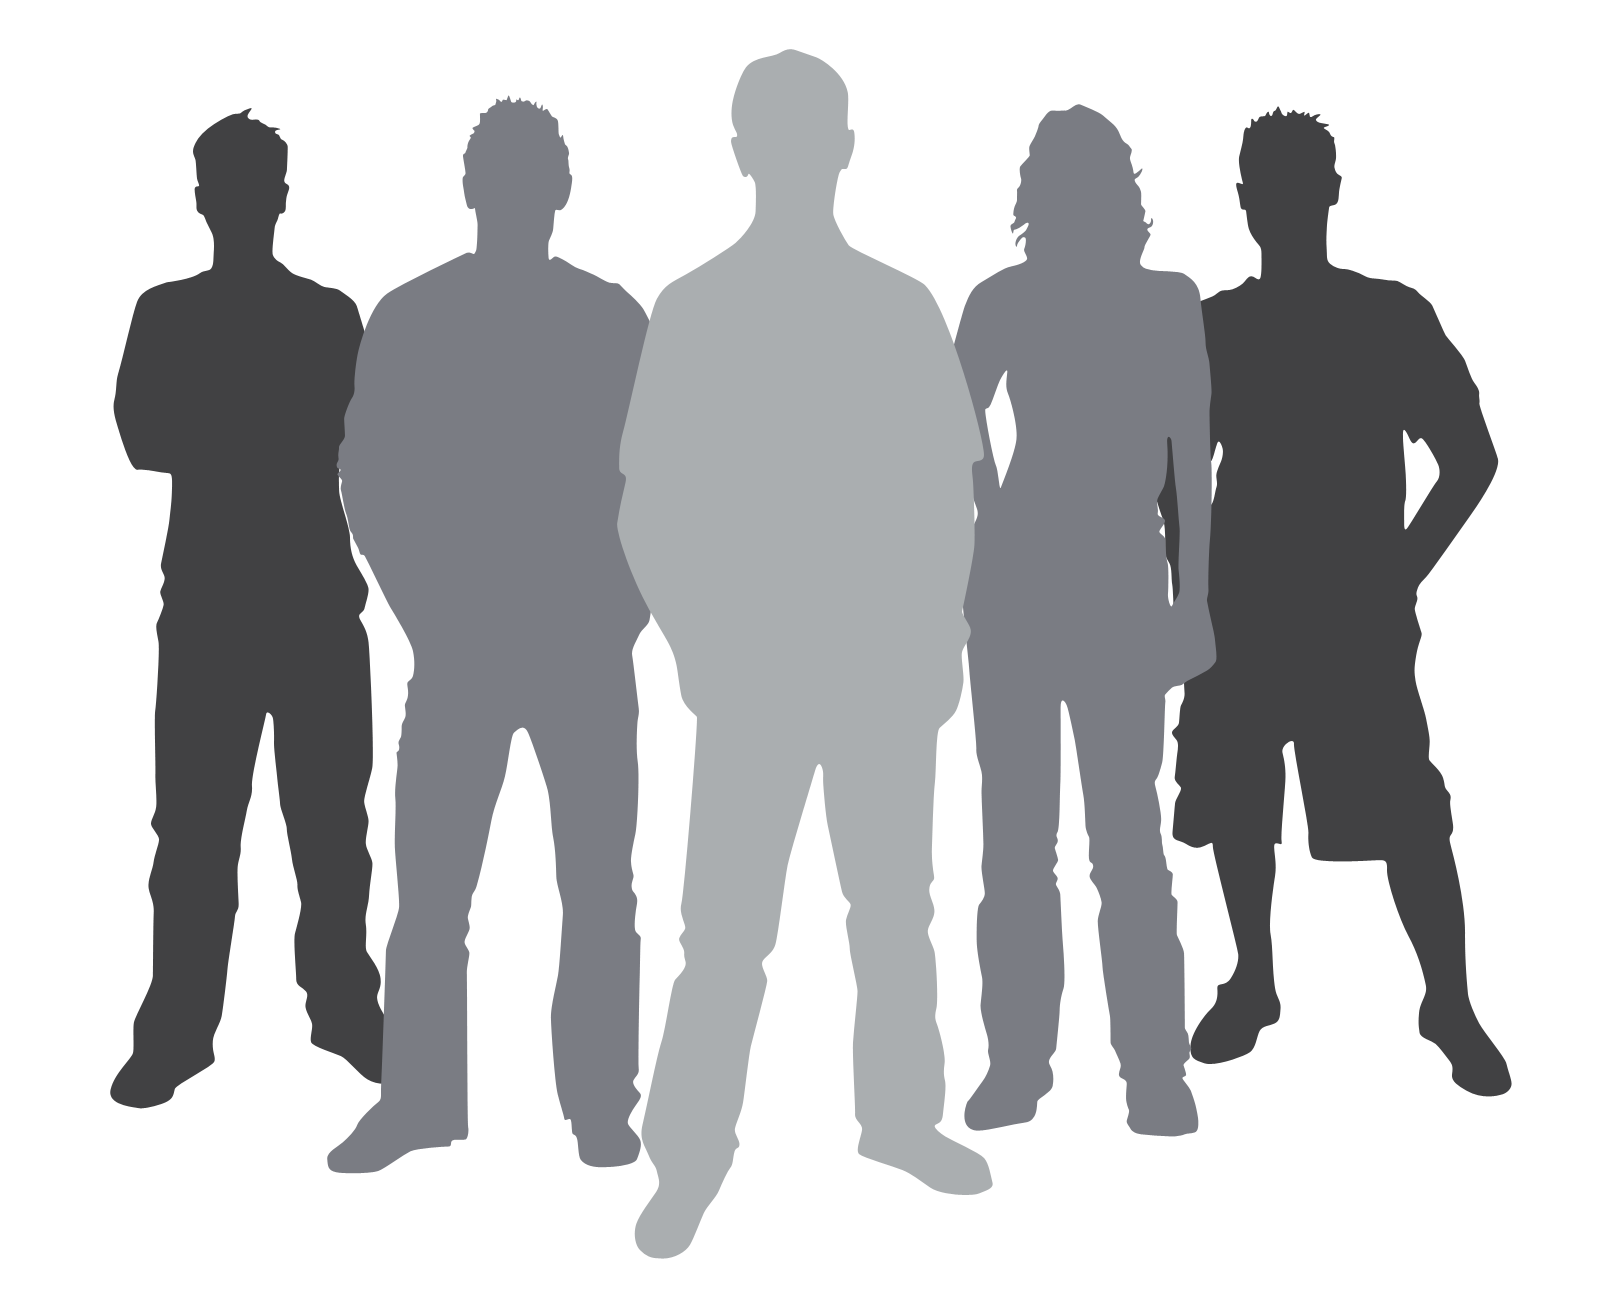 People clip art at. Community clipart silhouette